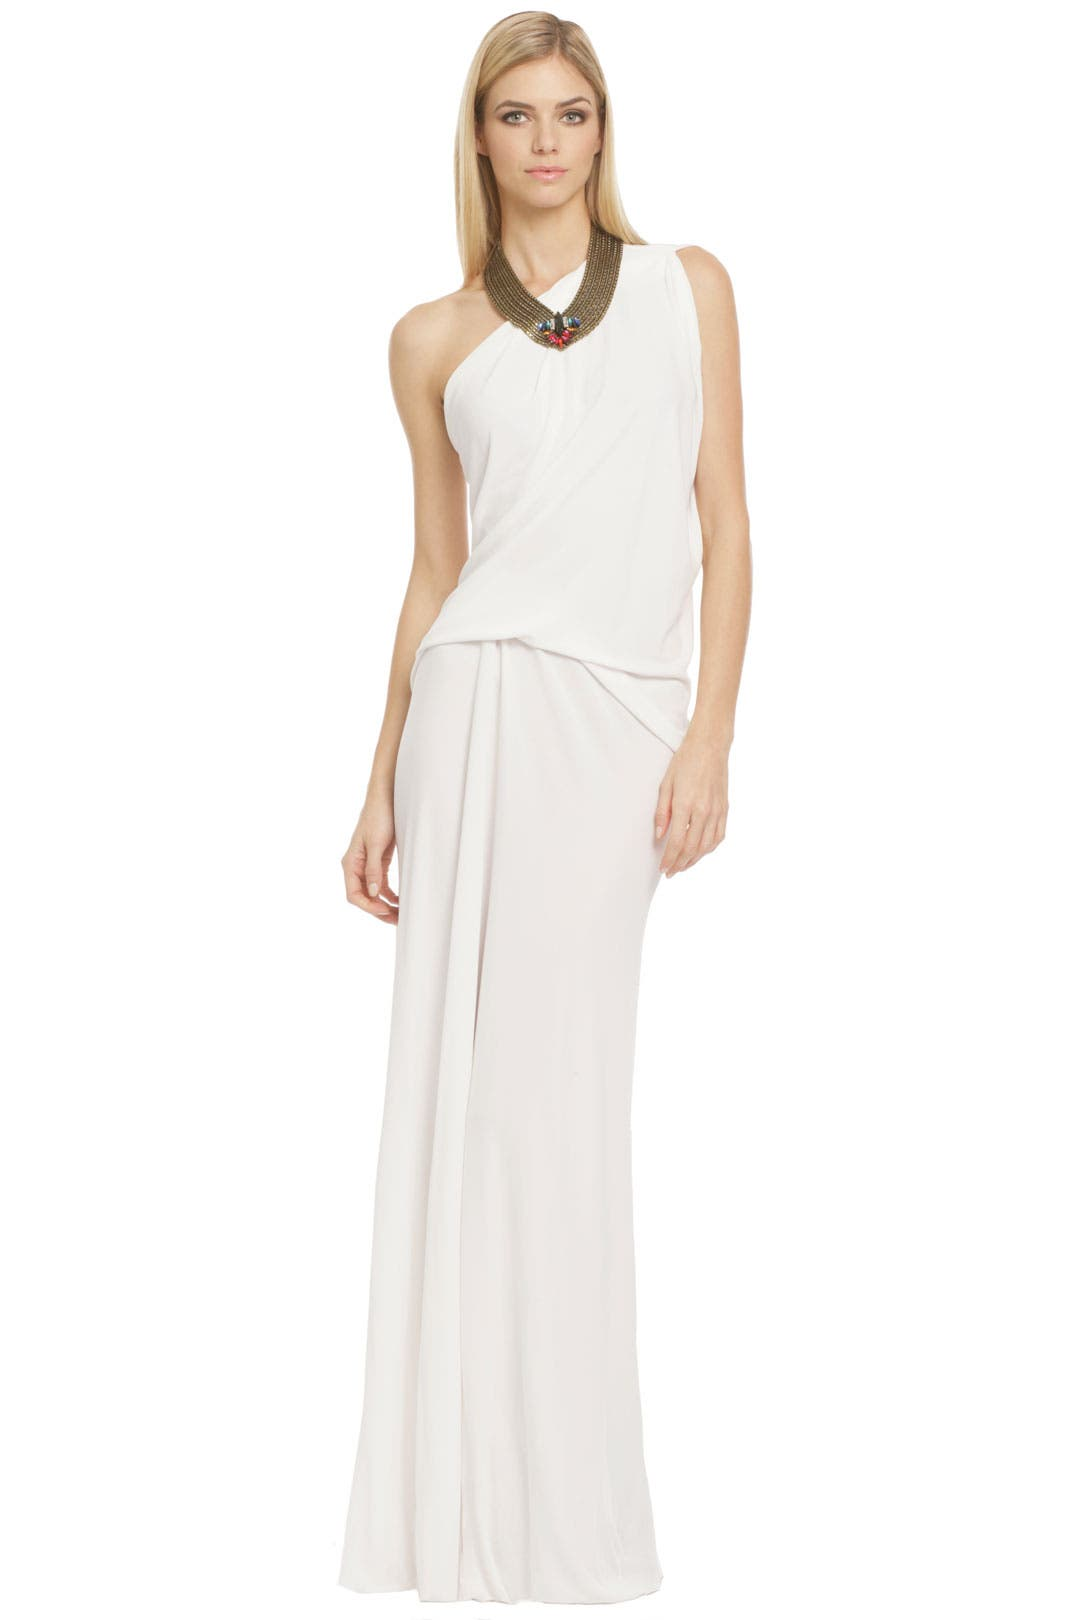 Purity Gown by Plein Sud